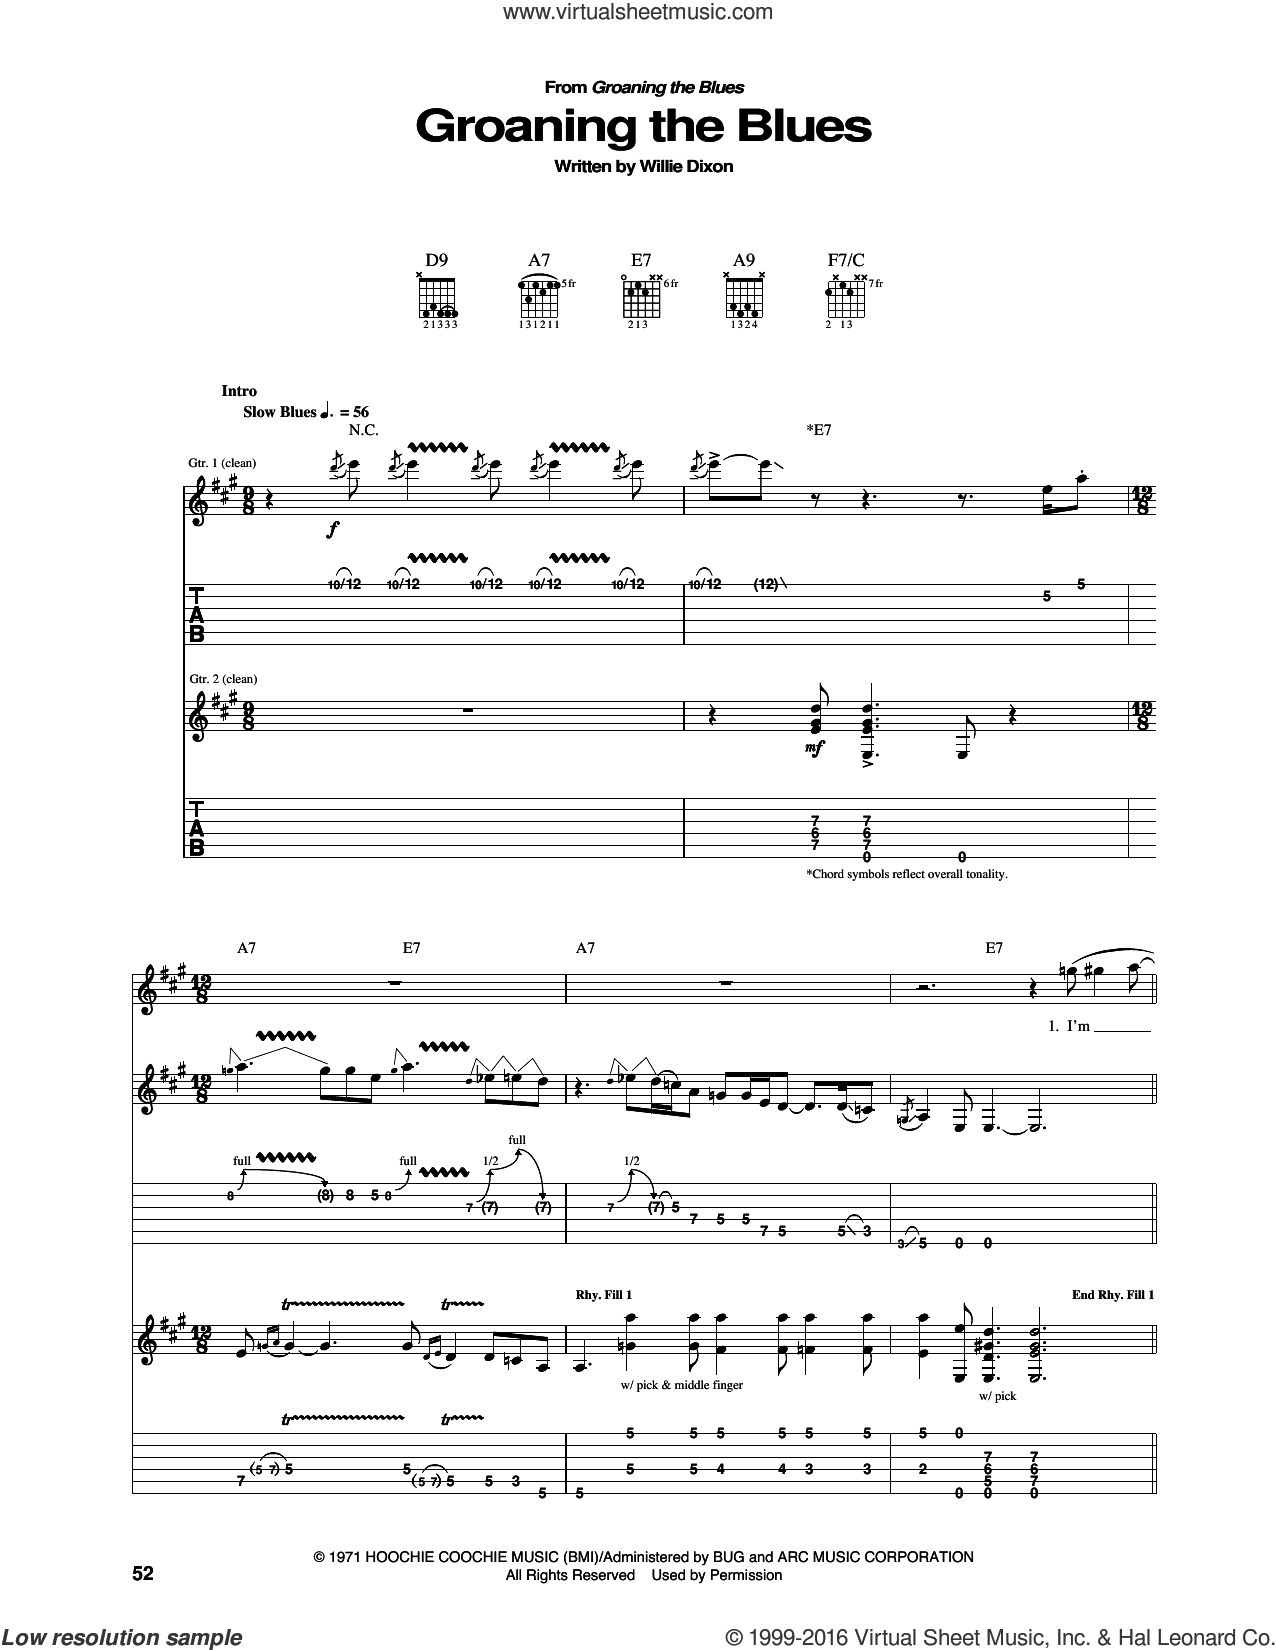 Groaning The Blues sheet music for guitar (tablature) by Willie Dixon